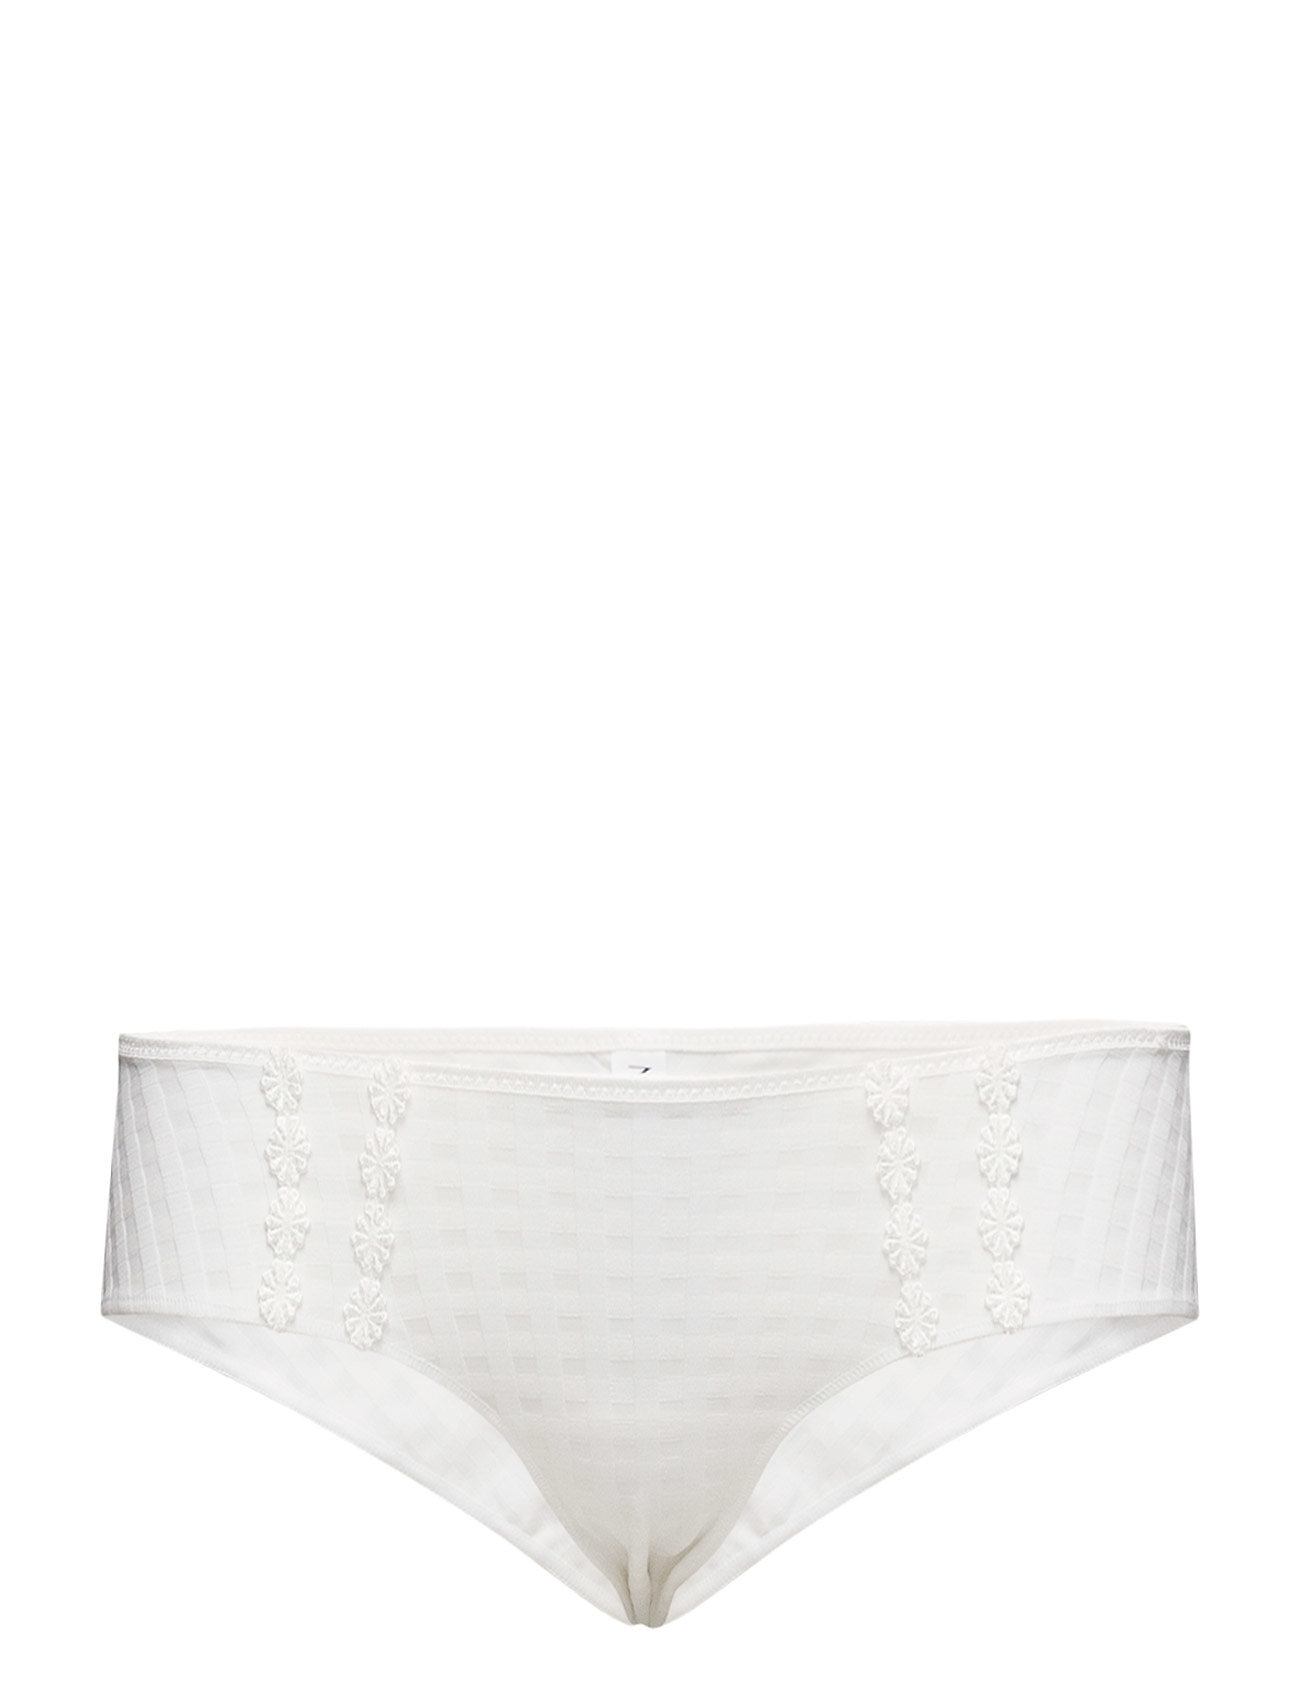 Marie Jo AVERO - NATURAL/OFFWHITE